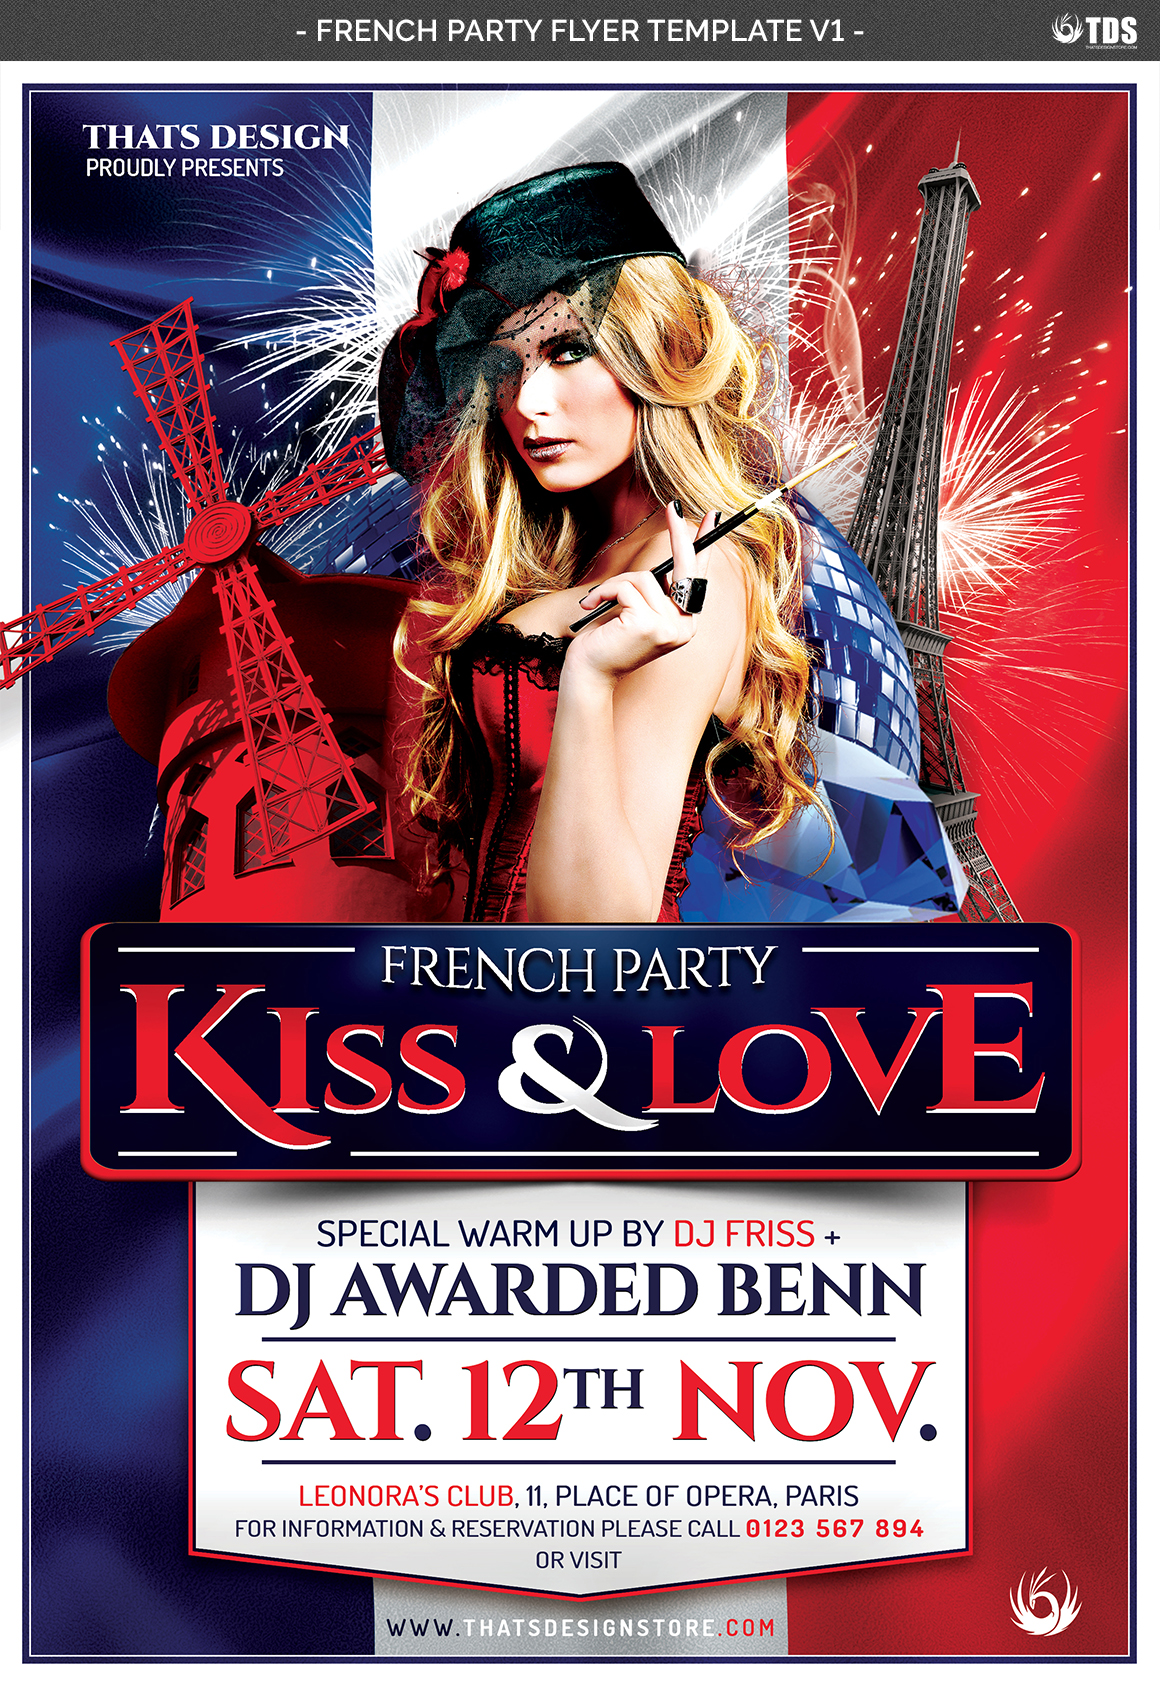 French Party Flyer Template V1 example image 4